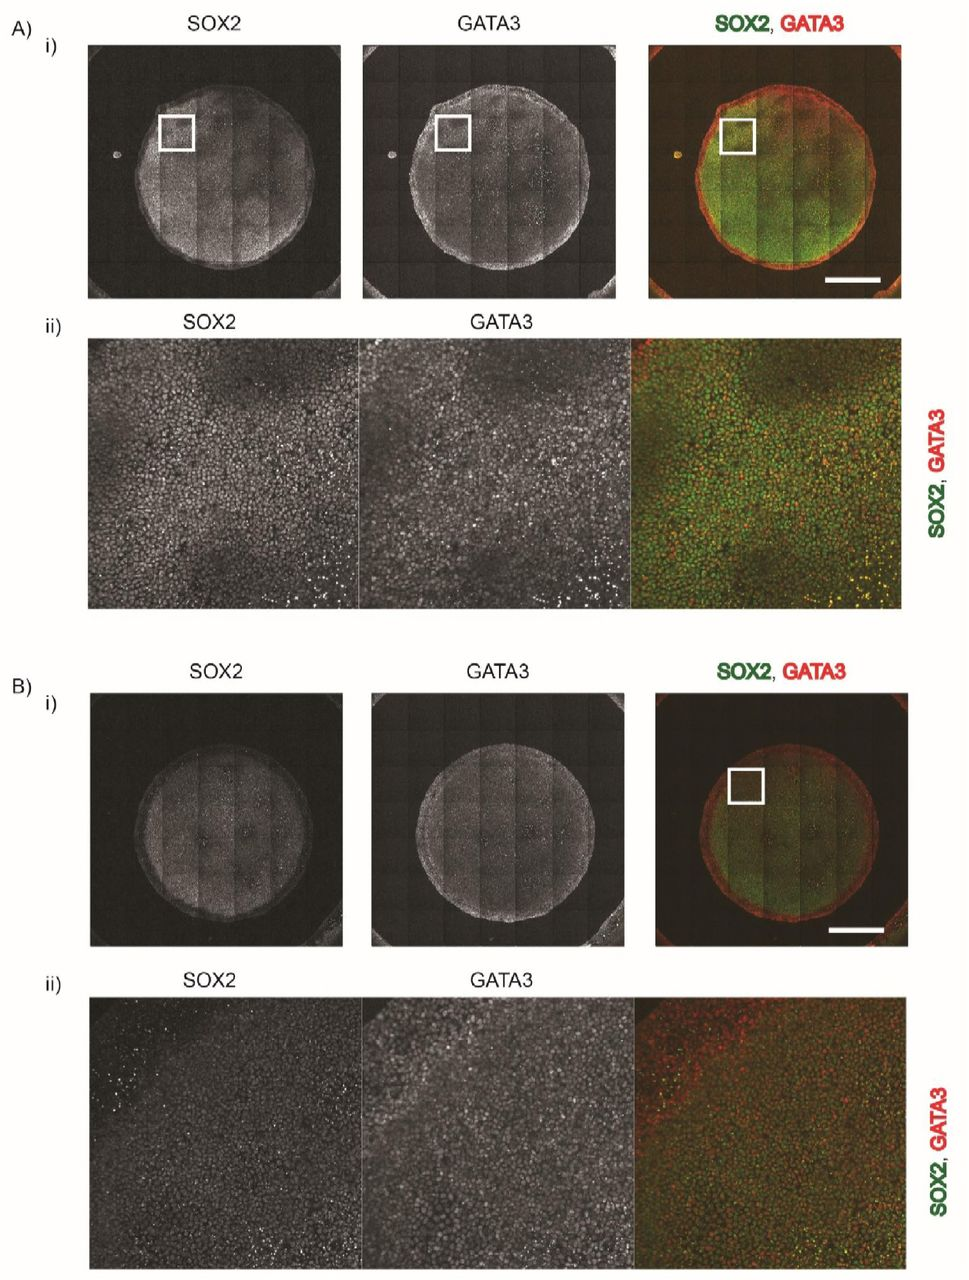 RD-like spatial oscillations of pre-neurulation-like fates detected when large geometrically confined hPSC colonies are treated with 200ng/ml BMP4 and SB in N2B27 medium. Representative immunofluorescent images of geometrically confined hPSC colonies of 3mm diameter stained for SOX2, and GATA3. The colonies were treated with 200ng/ml of BMP4 and SB for 48h. Scale bar represents 1mm.